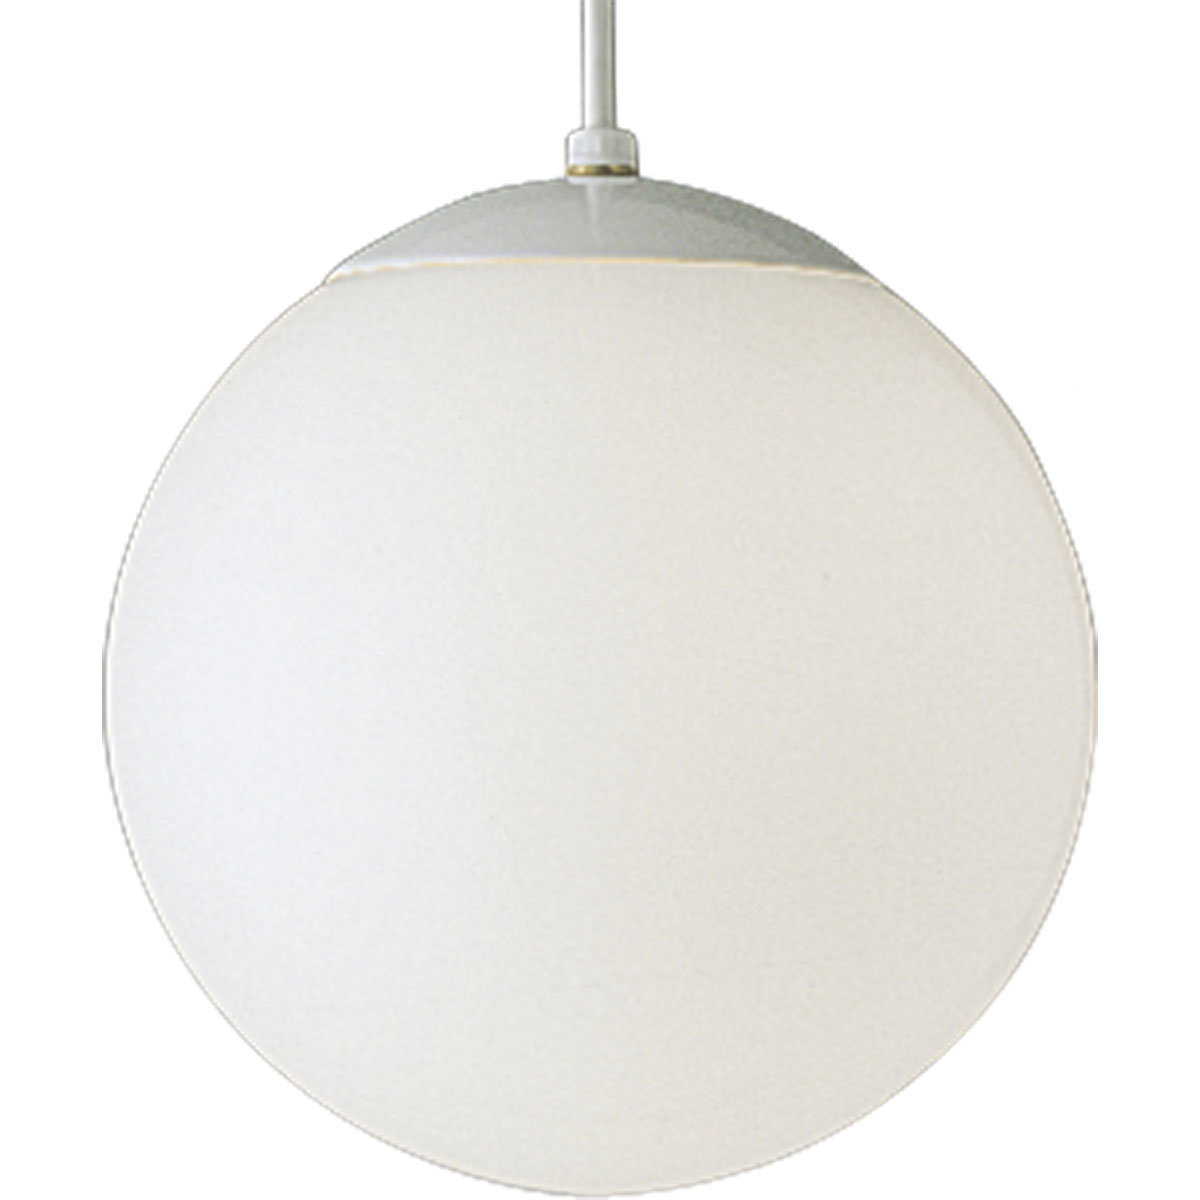 Bautista 1 Light Single Globe Pendants With Regard To Most Recently Released Bylar 1 Light Globe Pendant (View 8 of 25)